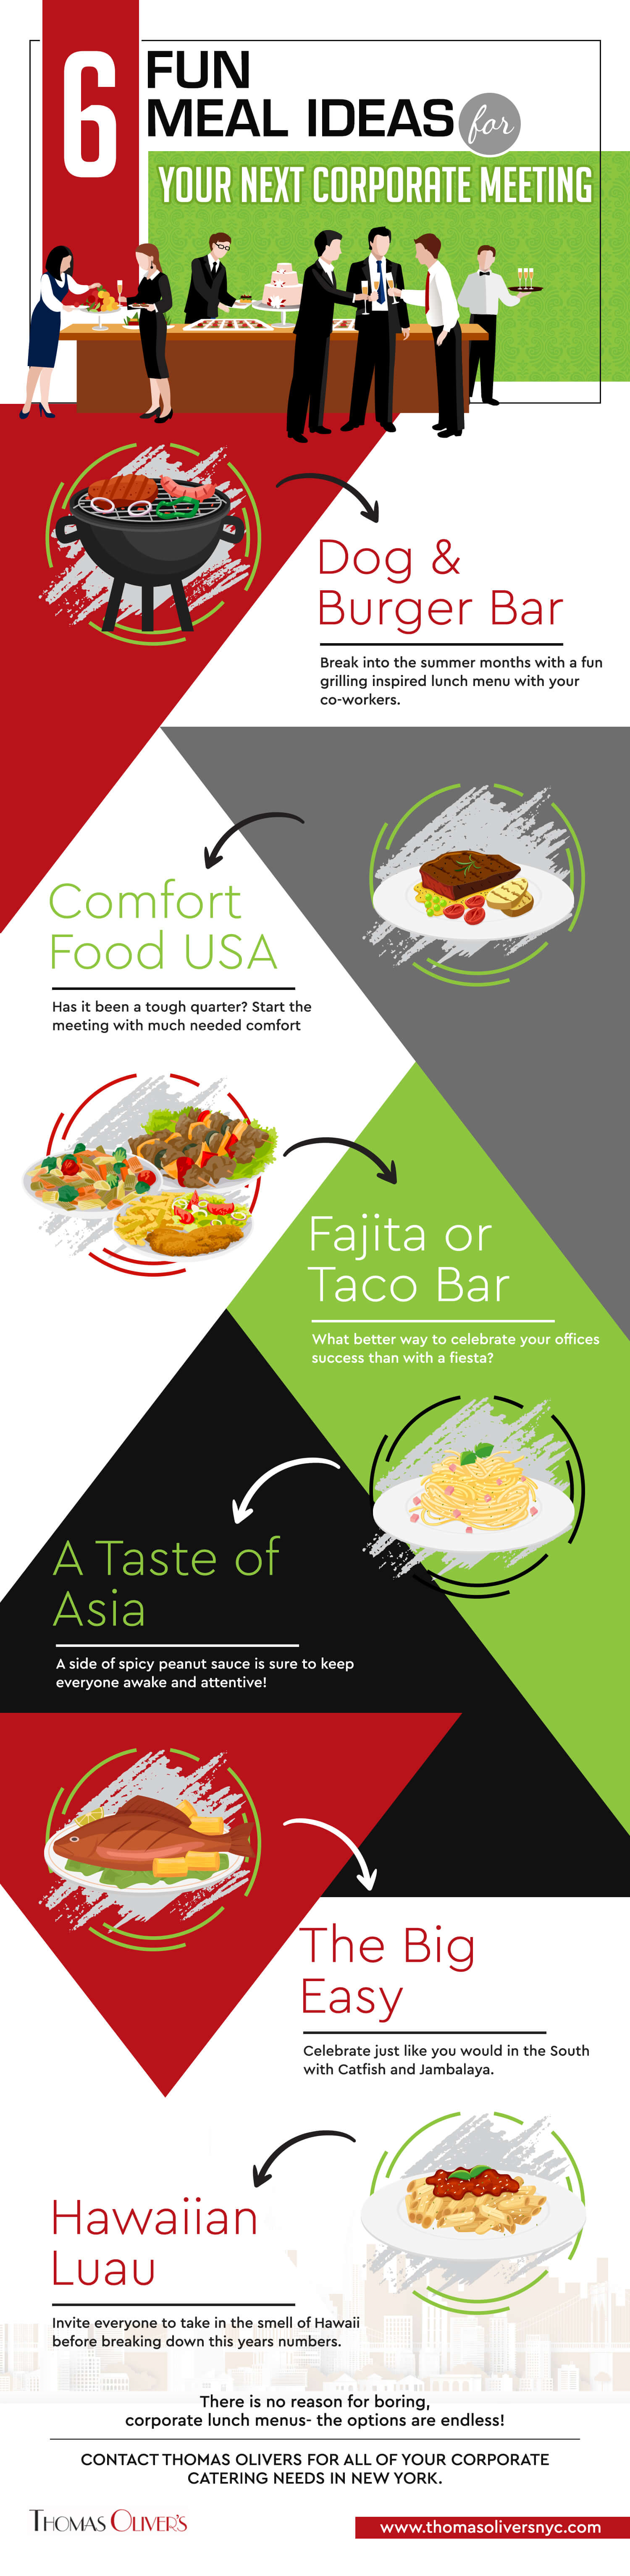 6-Fun-Meal-Ideas-for-Your-Next-Corporate-Meeting-infographic-plaza